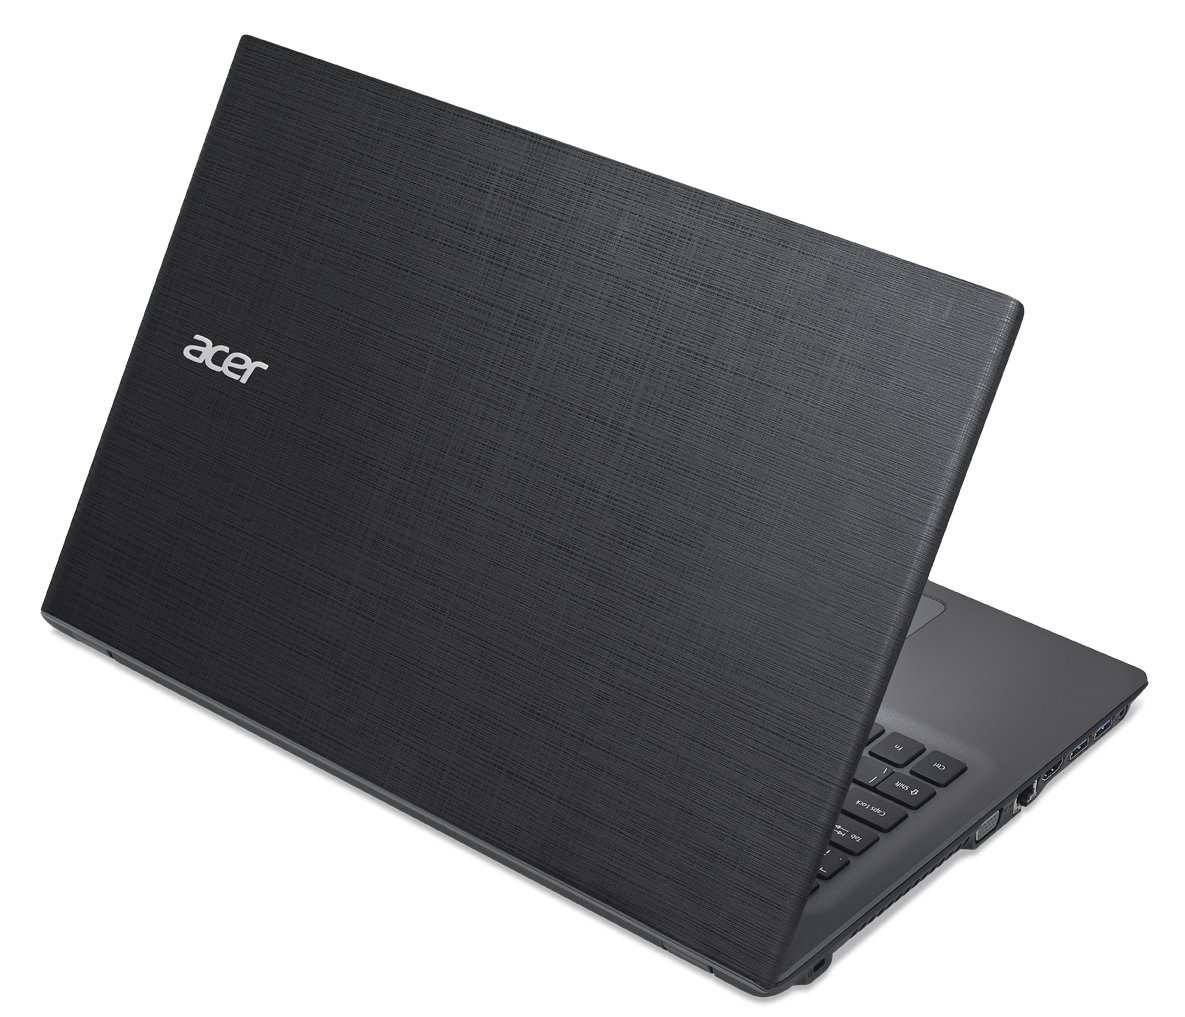 Amazon.com  Acer Aspire E5-573G 15.6-Inch Laptop (Intel Core i5-5200U 7a1fabeaaf